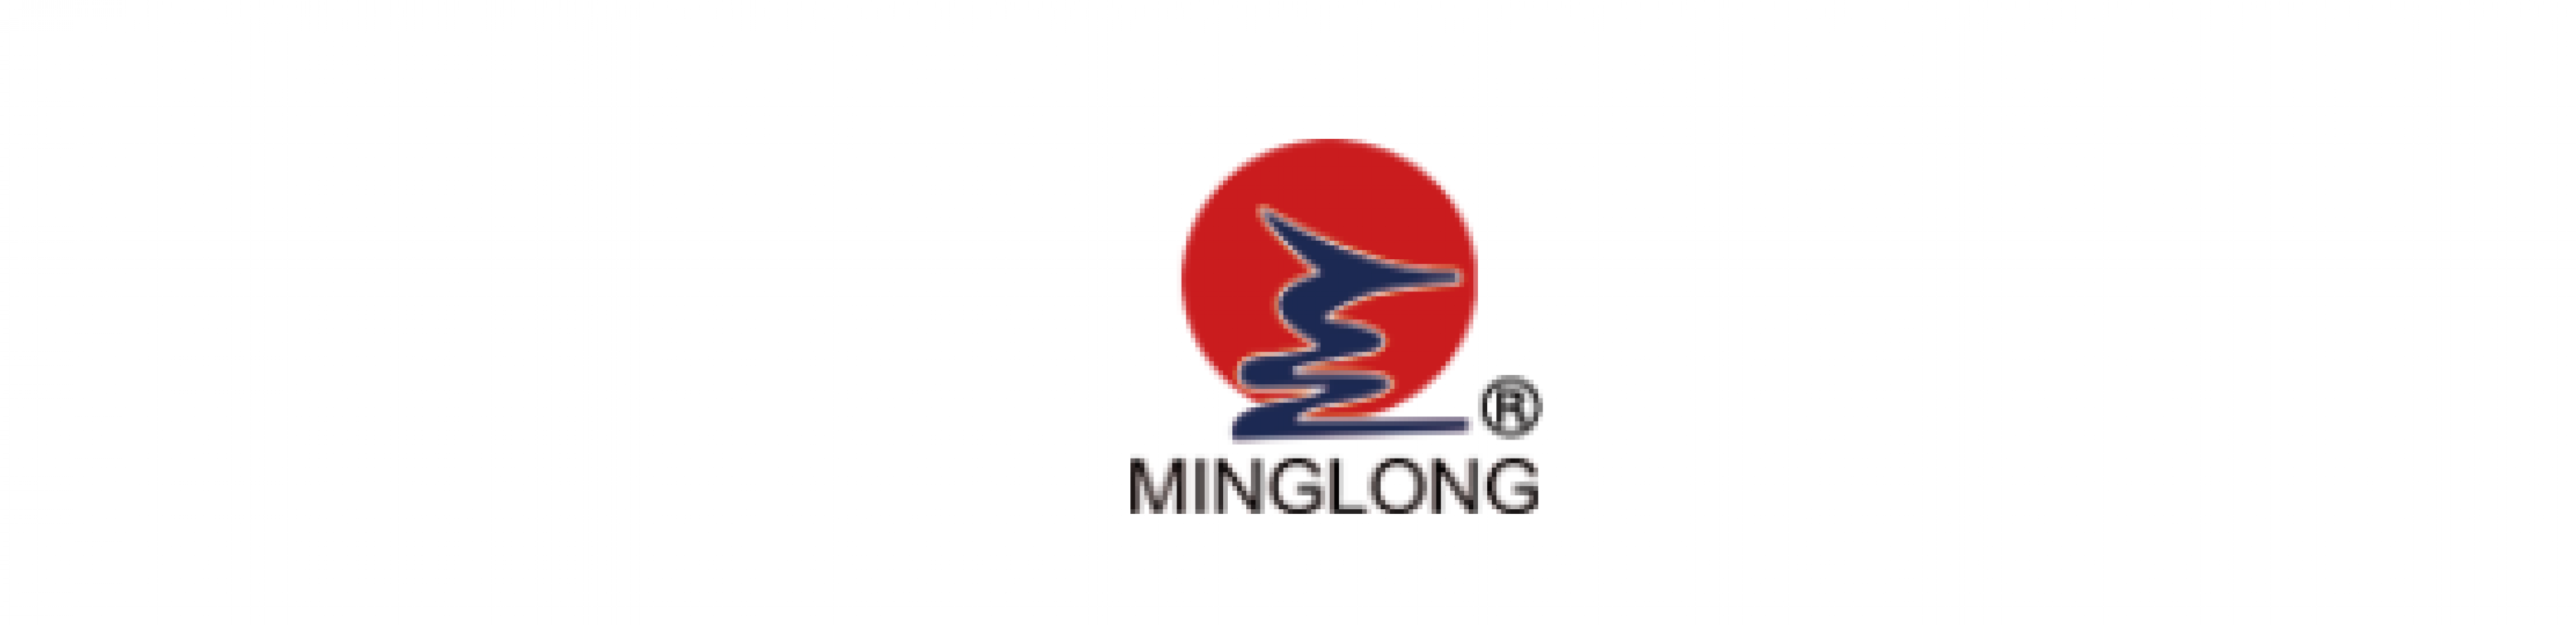 Yiwu Mingrong Thread Industry Co.,Ltd.